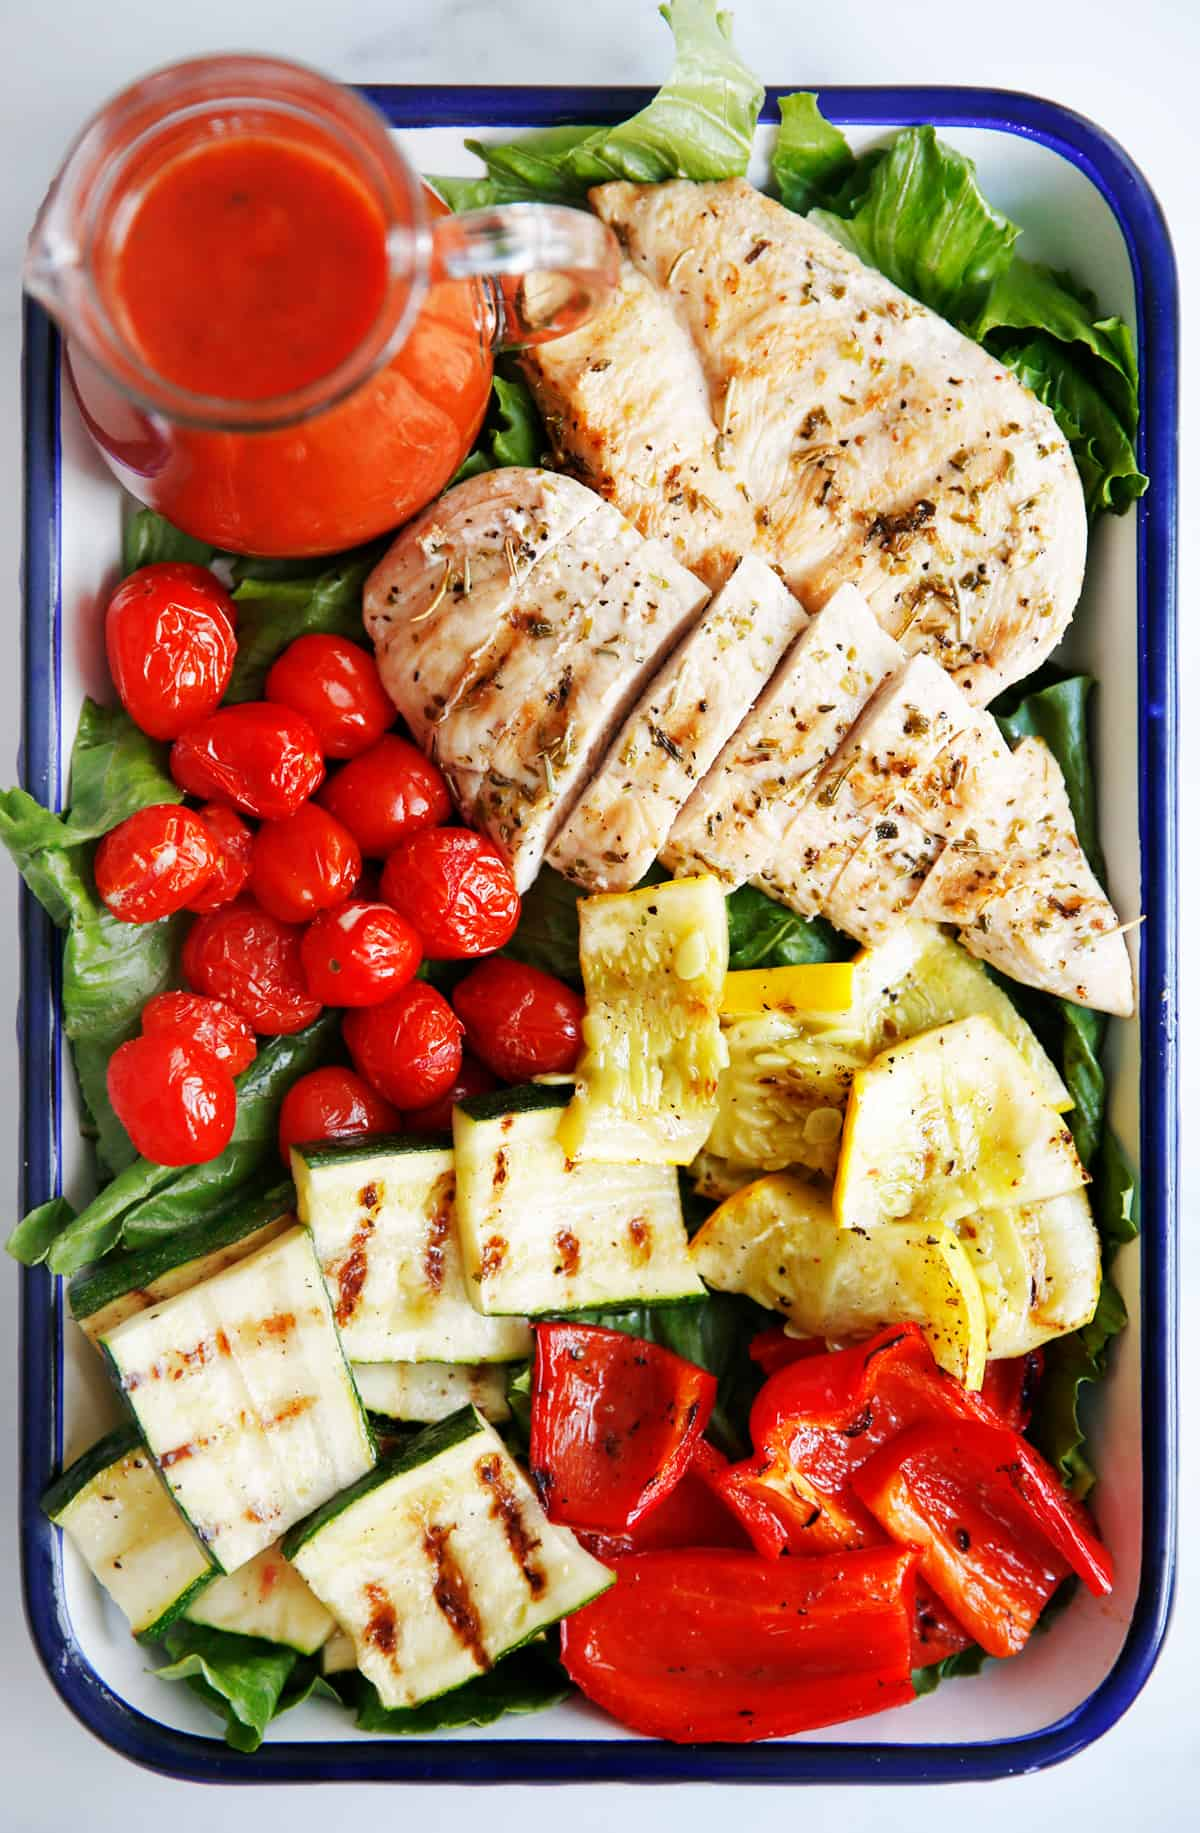 Grilled Chicken and Vegetables with Tomato Vinaigrette